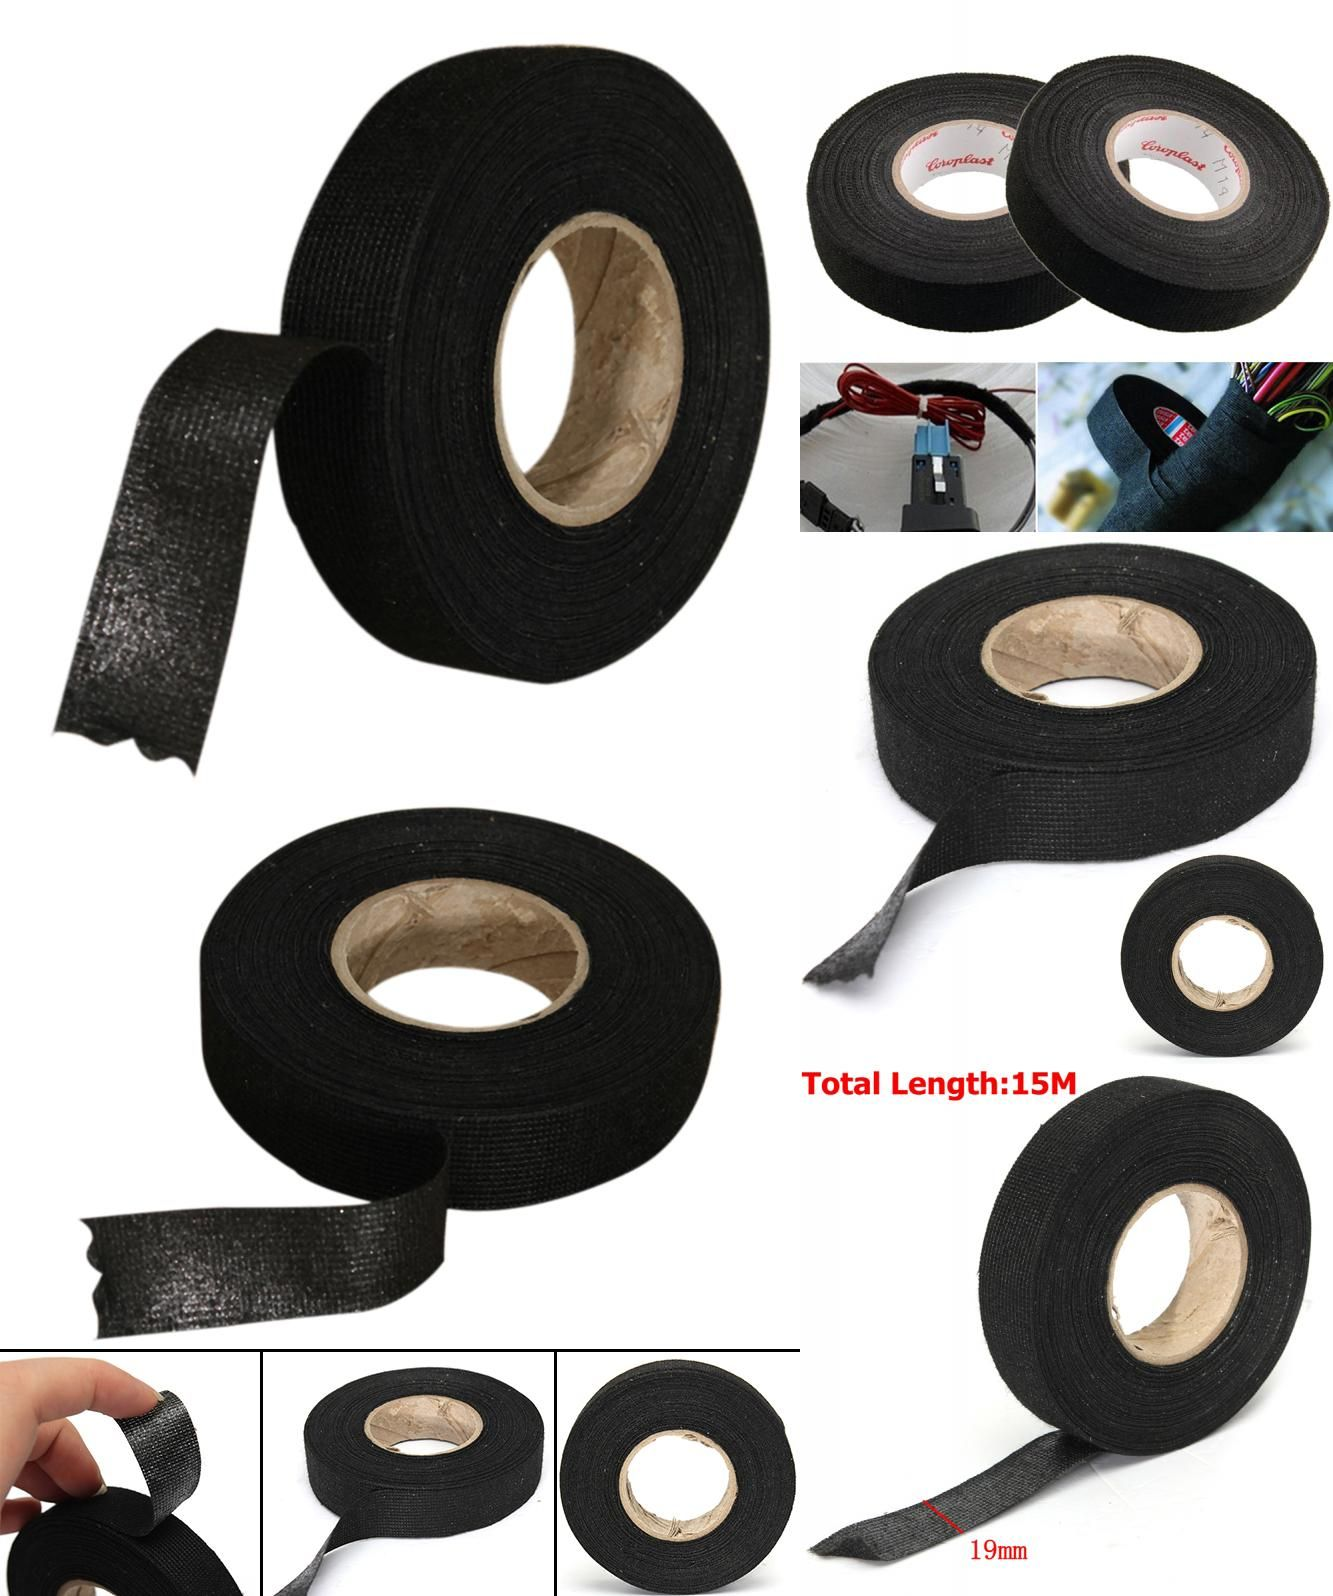 Visit To Buy 1pc Black Adhesive Cloth Fabric Tape Cable Wiring Harness Protection For Car